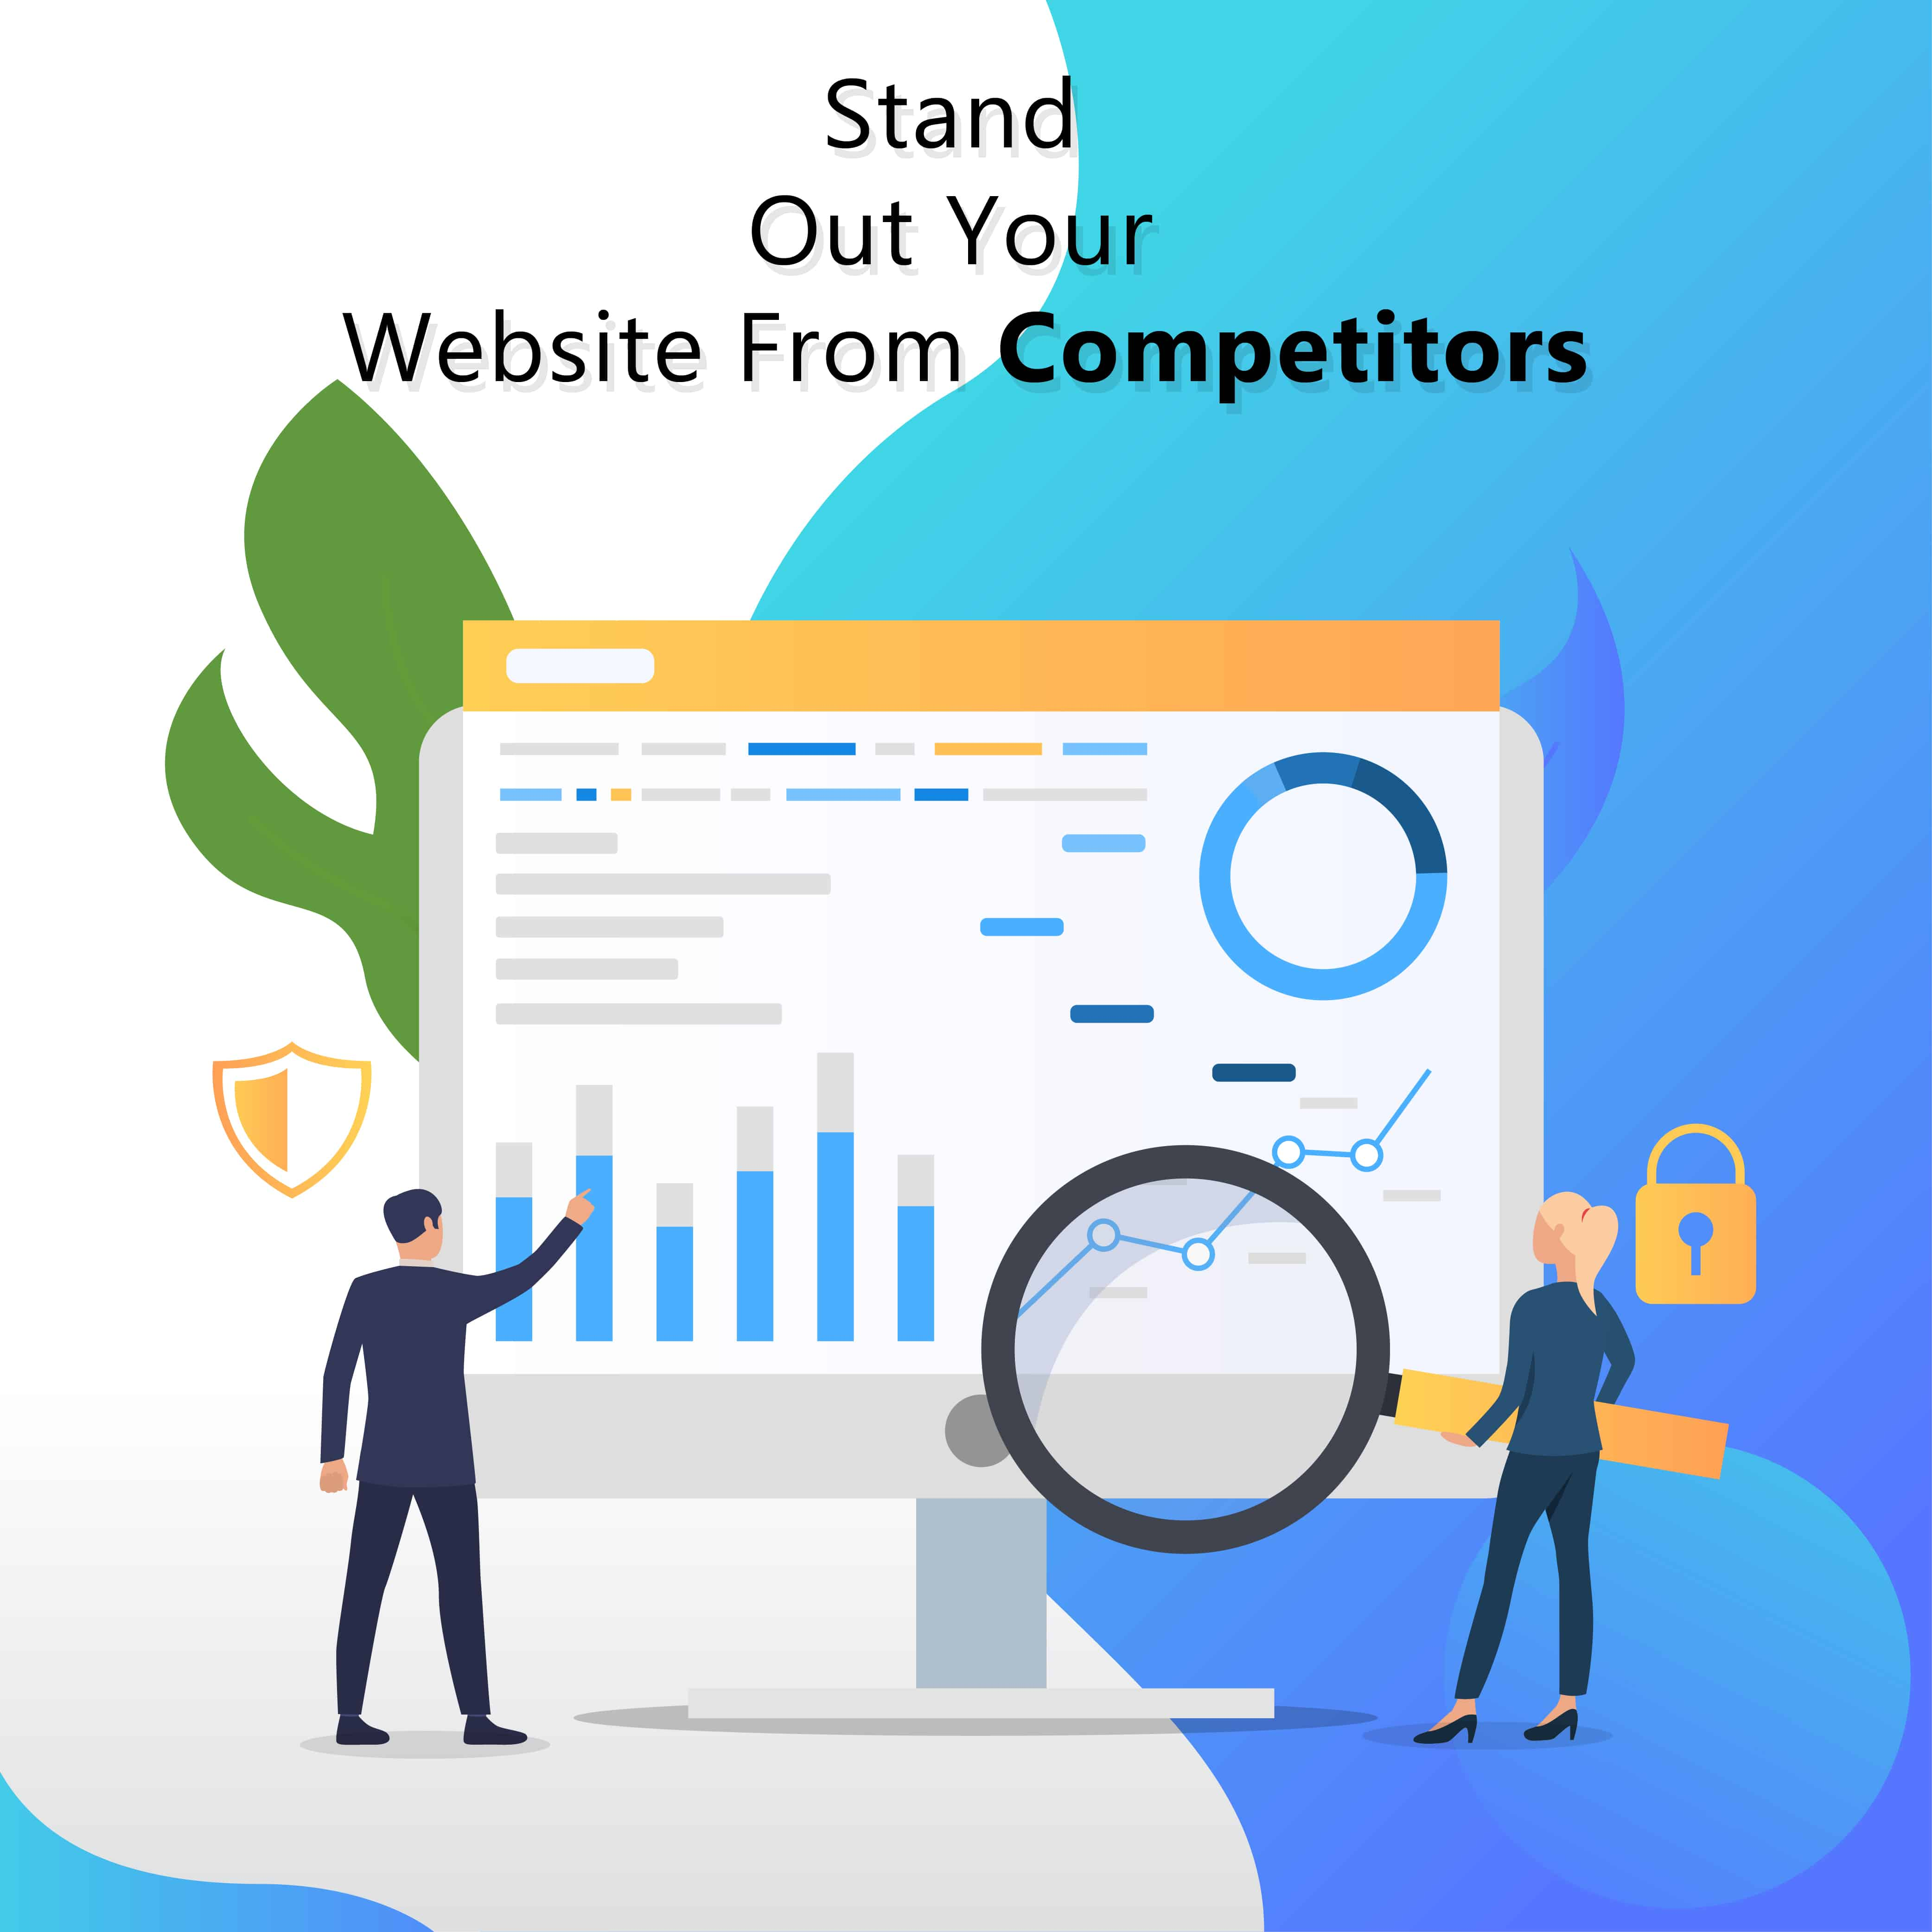 Stand Out Your Website From Competitors